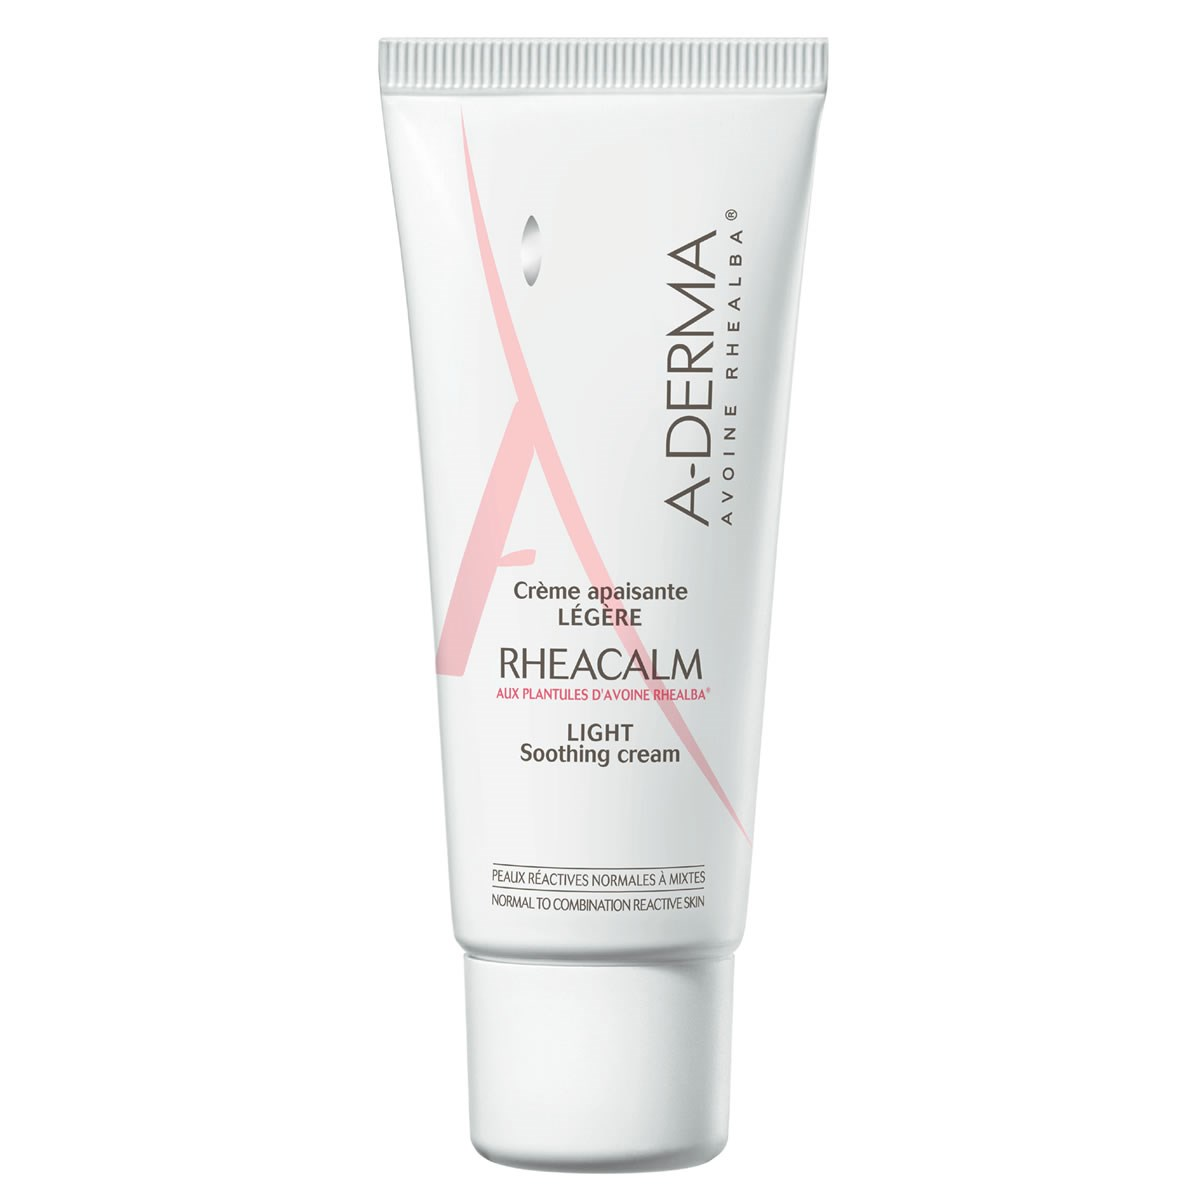 Aderma Rheacalm Light Soothing Cream